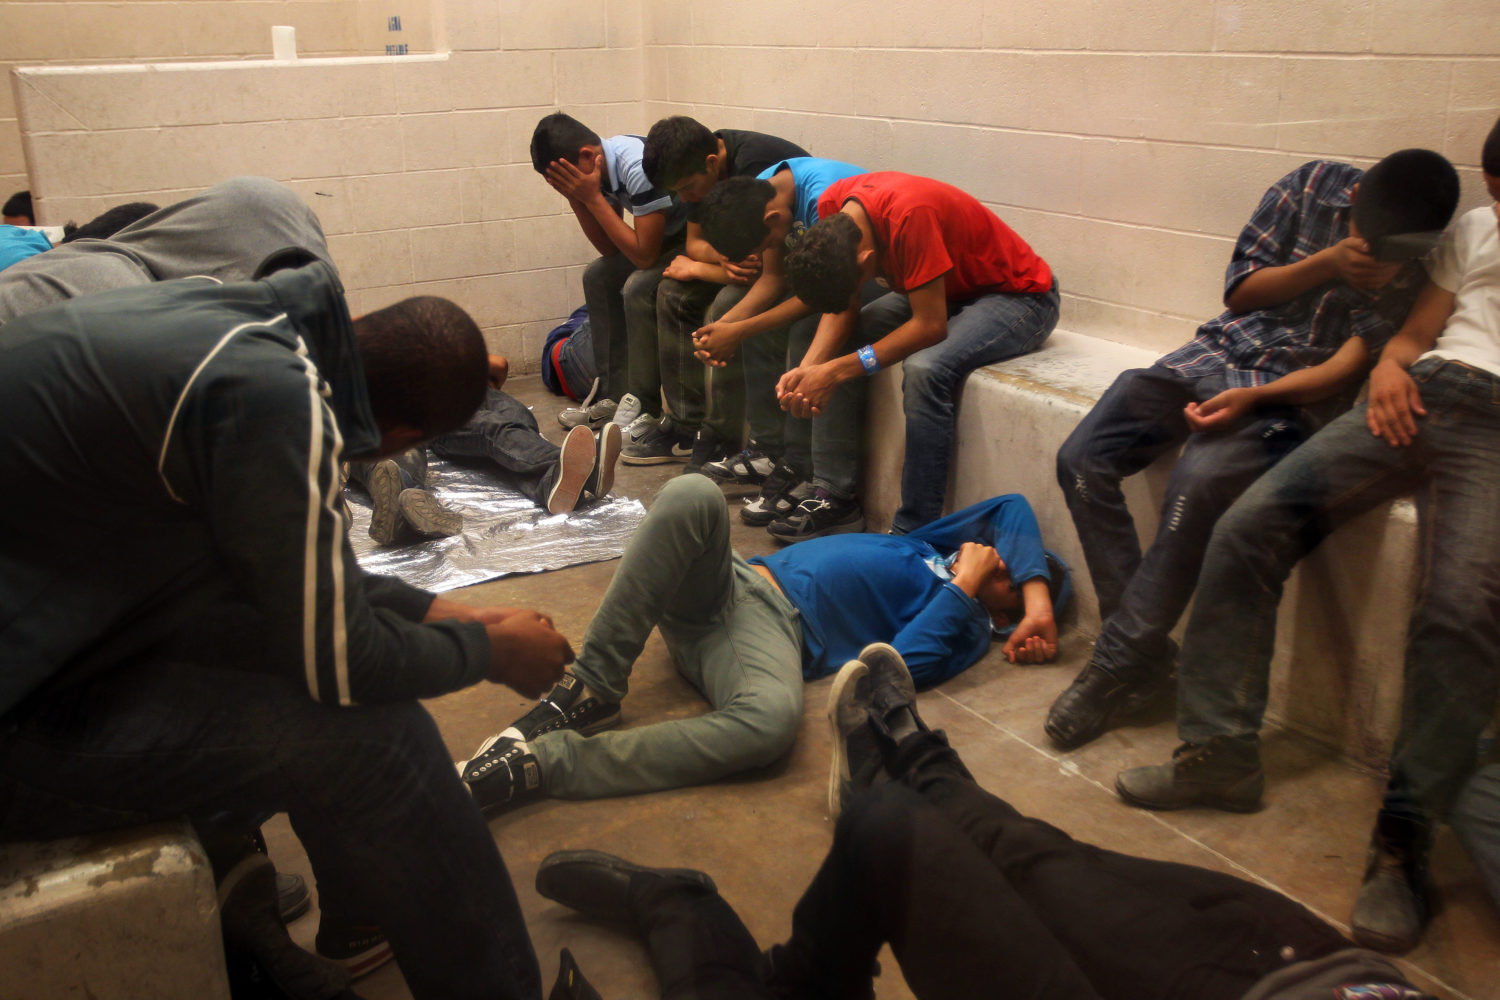 MCALLEN, TX - JULY 15: Immigrants who have been caught crossing the border illegally are housed inside the McAllen Border Patrol Station in McAllen, Texas where they are processed on July 15, 2014 in McAllen, Texas. The detainees are both men and women, and range in age from infants to adults, where more than 350 were being held. Detainees are mostly separated by gender and age, except for infants. (Pool photo by Rick Loomis-Pool/Getty Images)